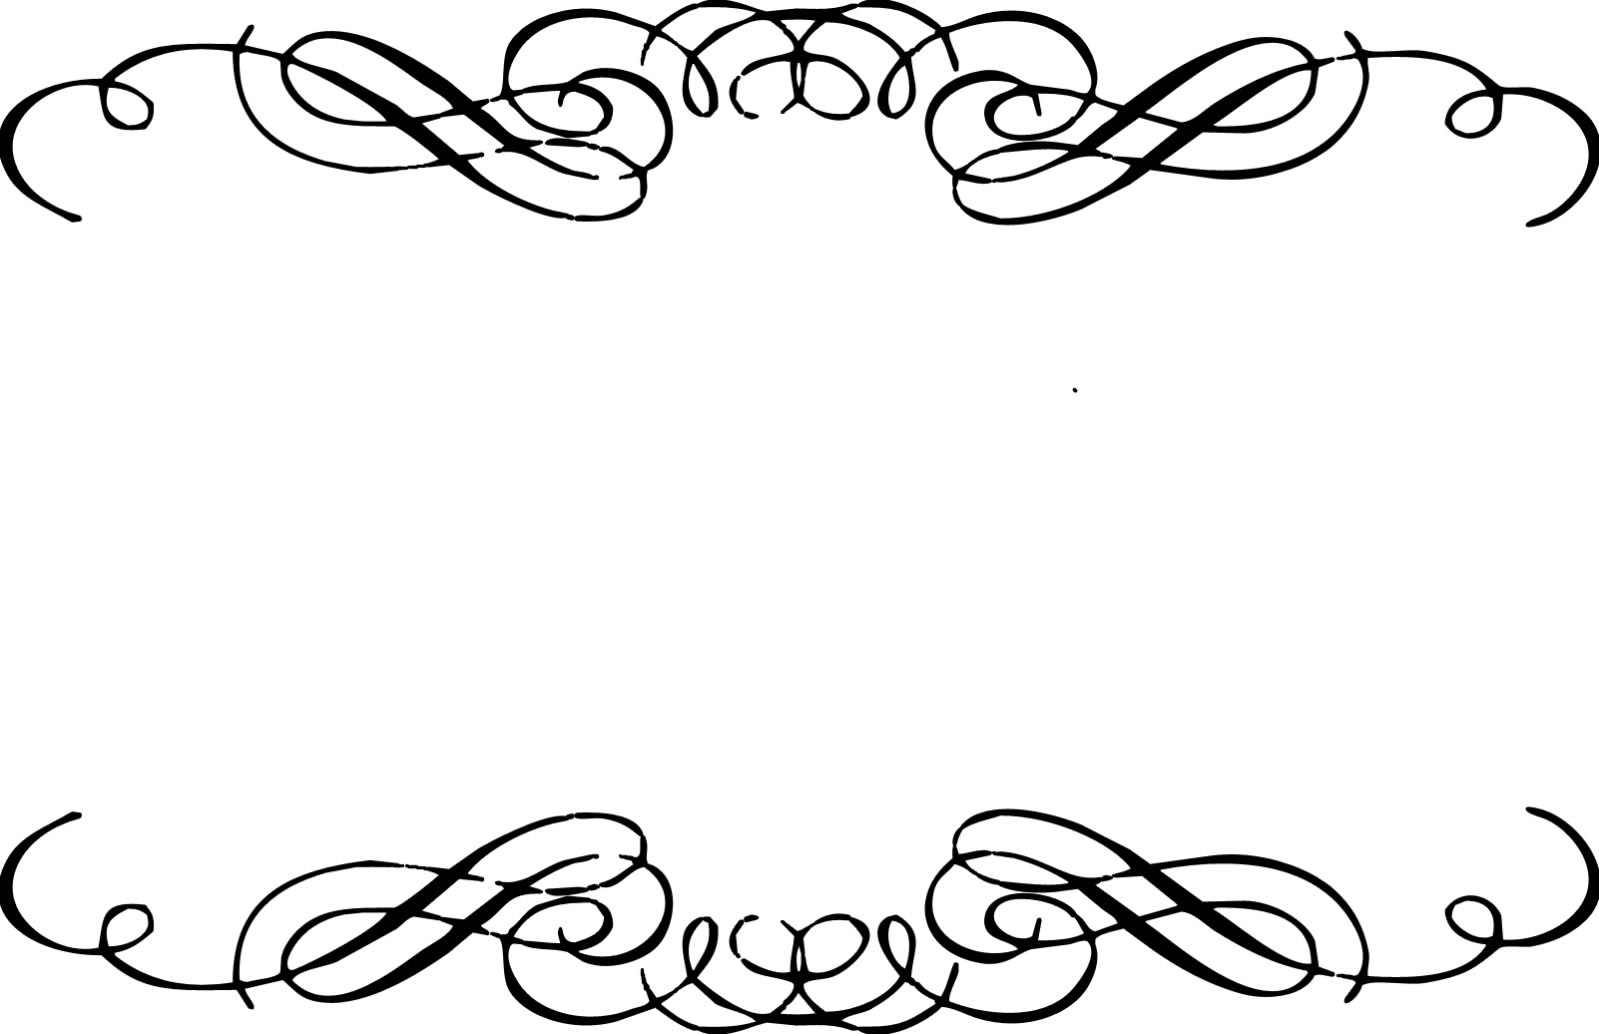 Free Curly Cue Cliparts, Download Free Clip Art, Free Clip.